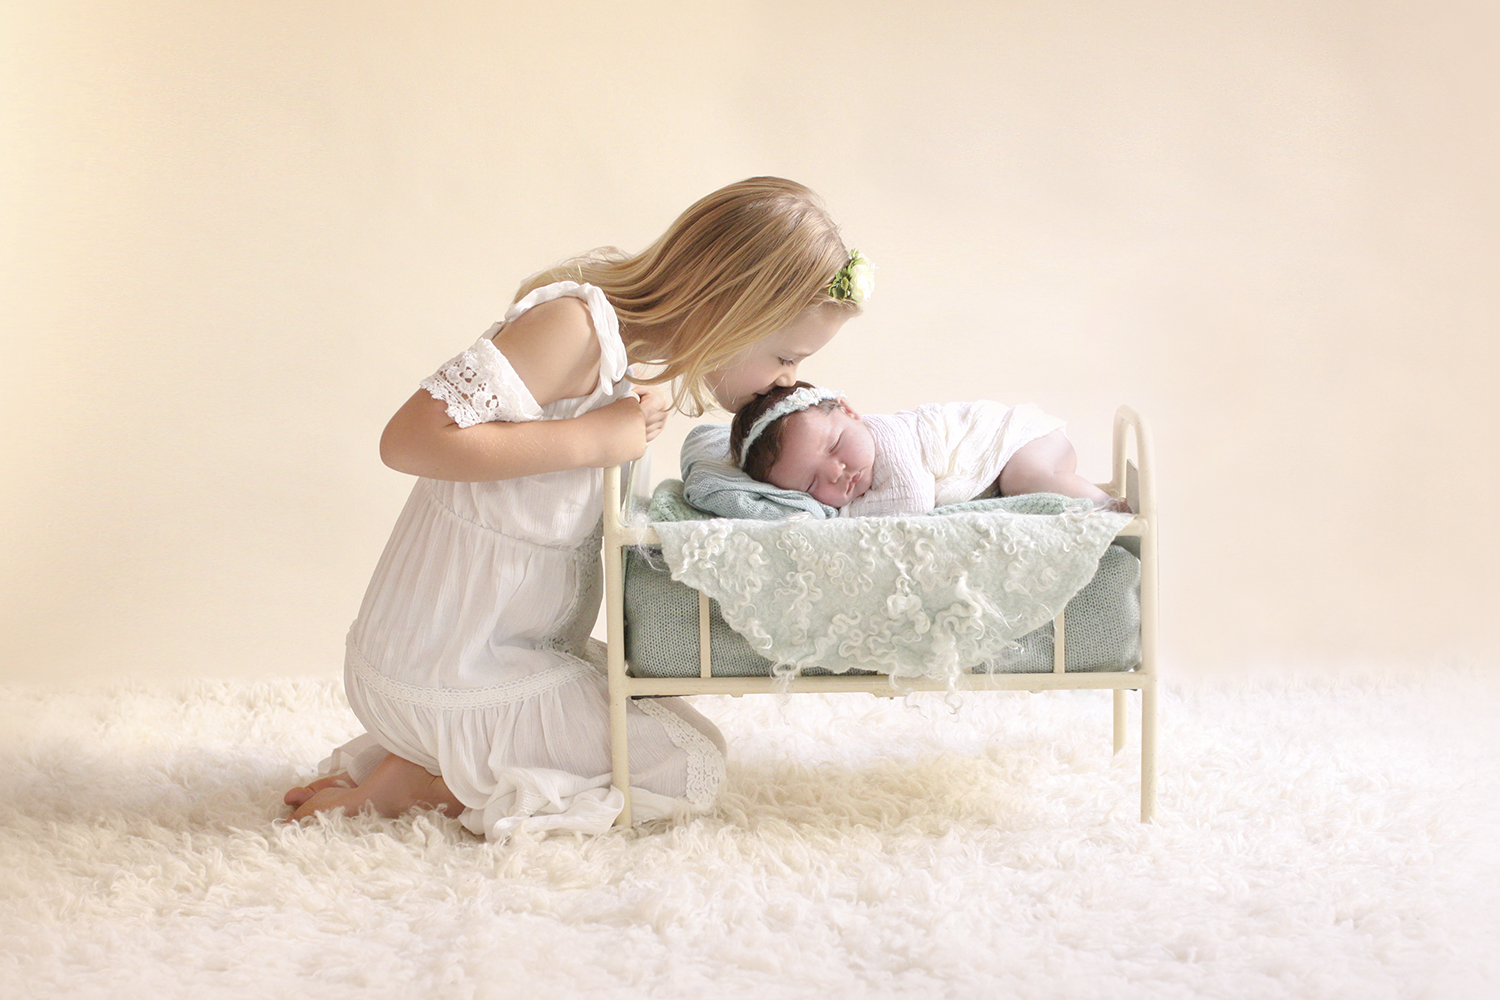 Newborn baby girl wrapped in cream wrap sleeping on cream vintage iron bed with mnt blanket and felt layer and tieback being kissed by big sibling sister on cream felt floor